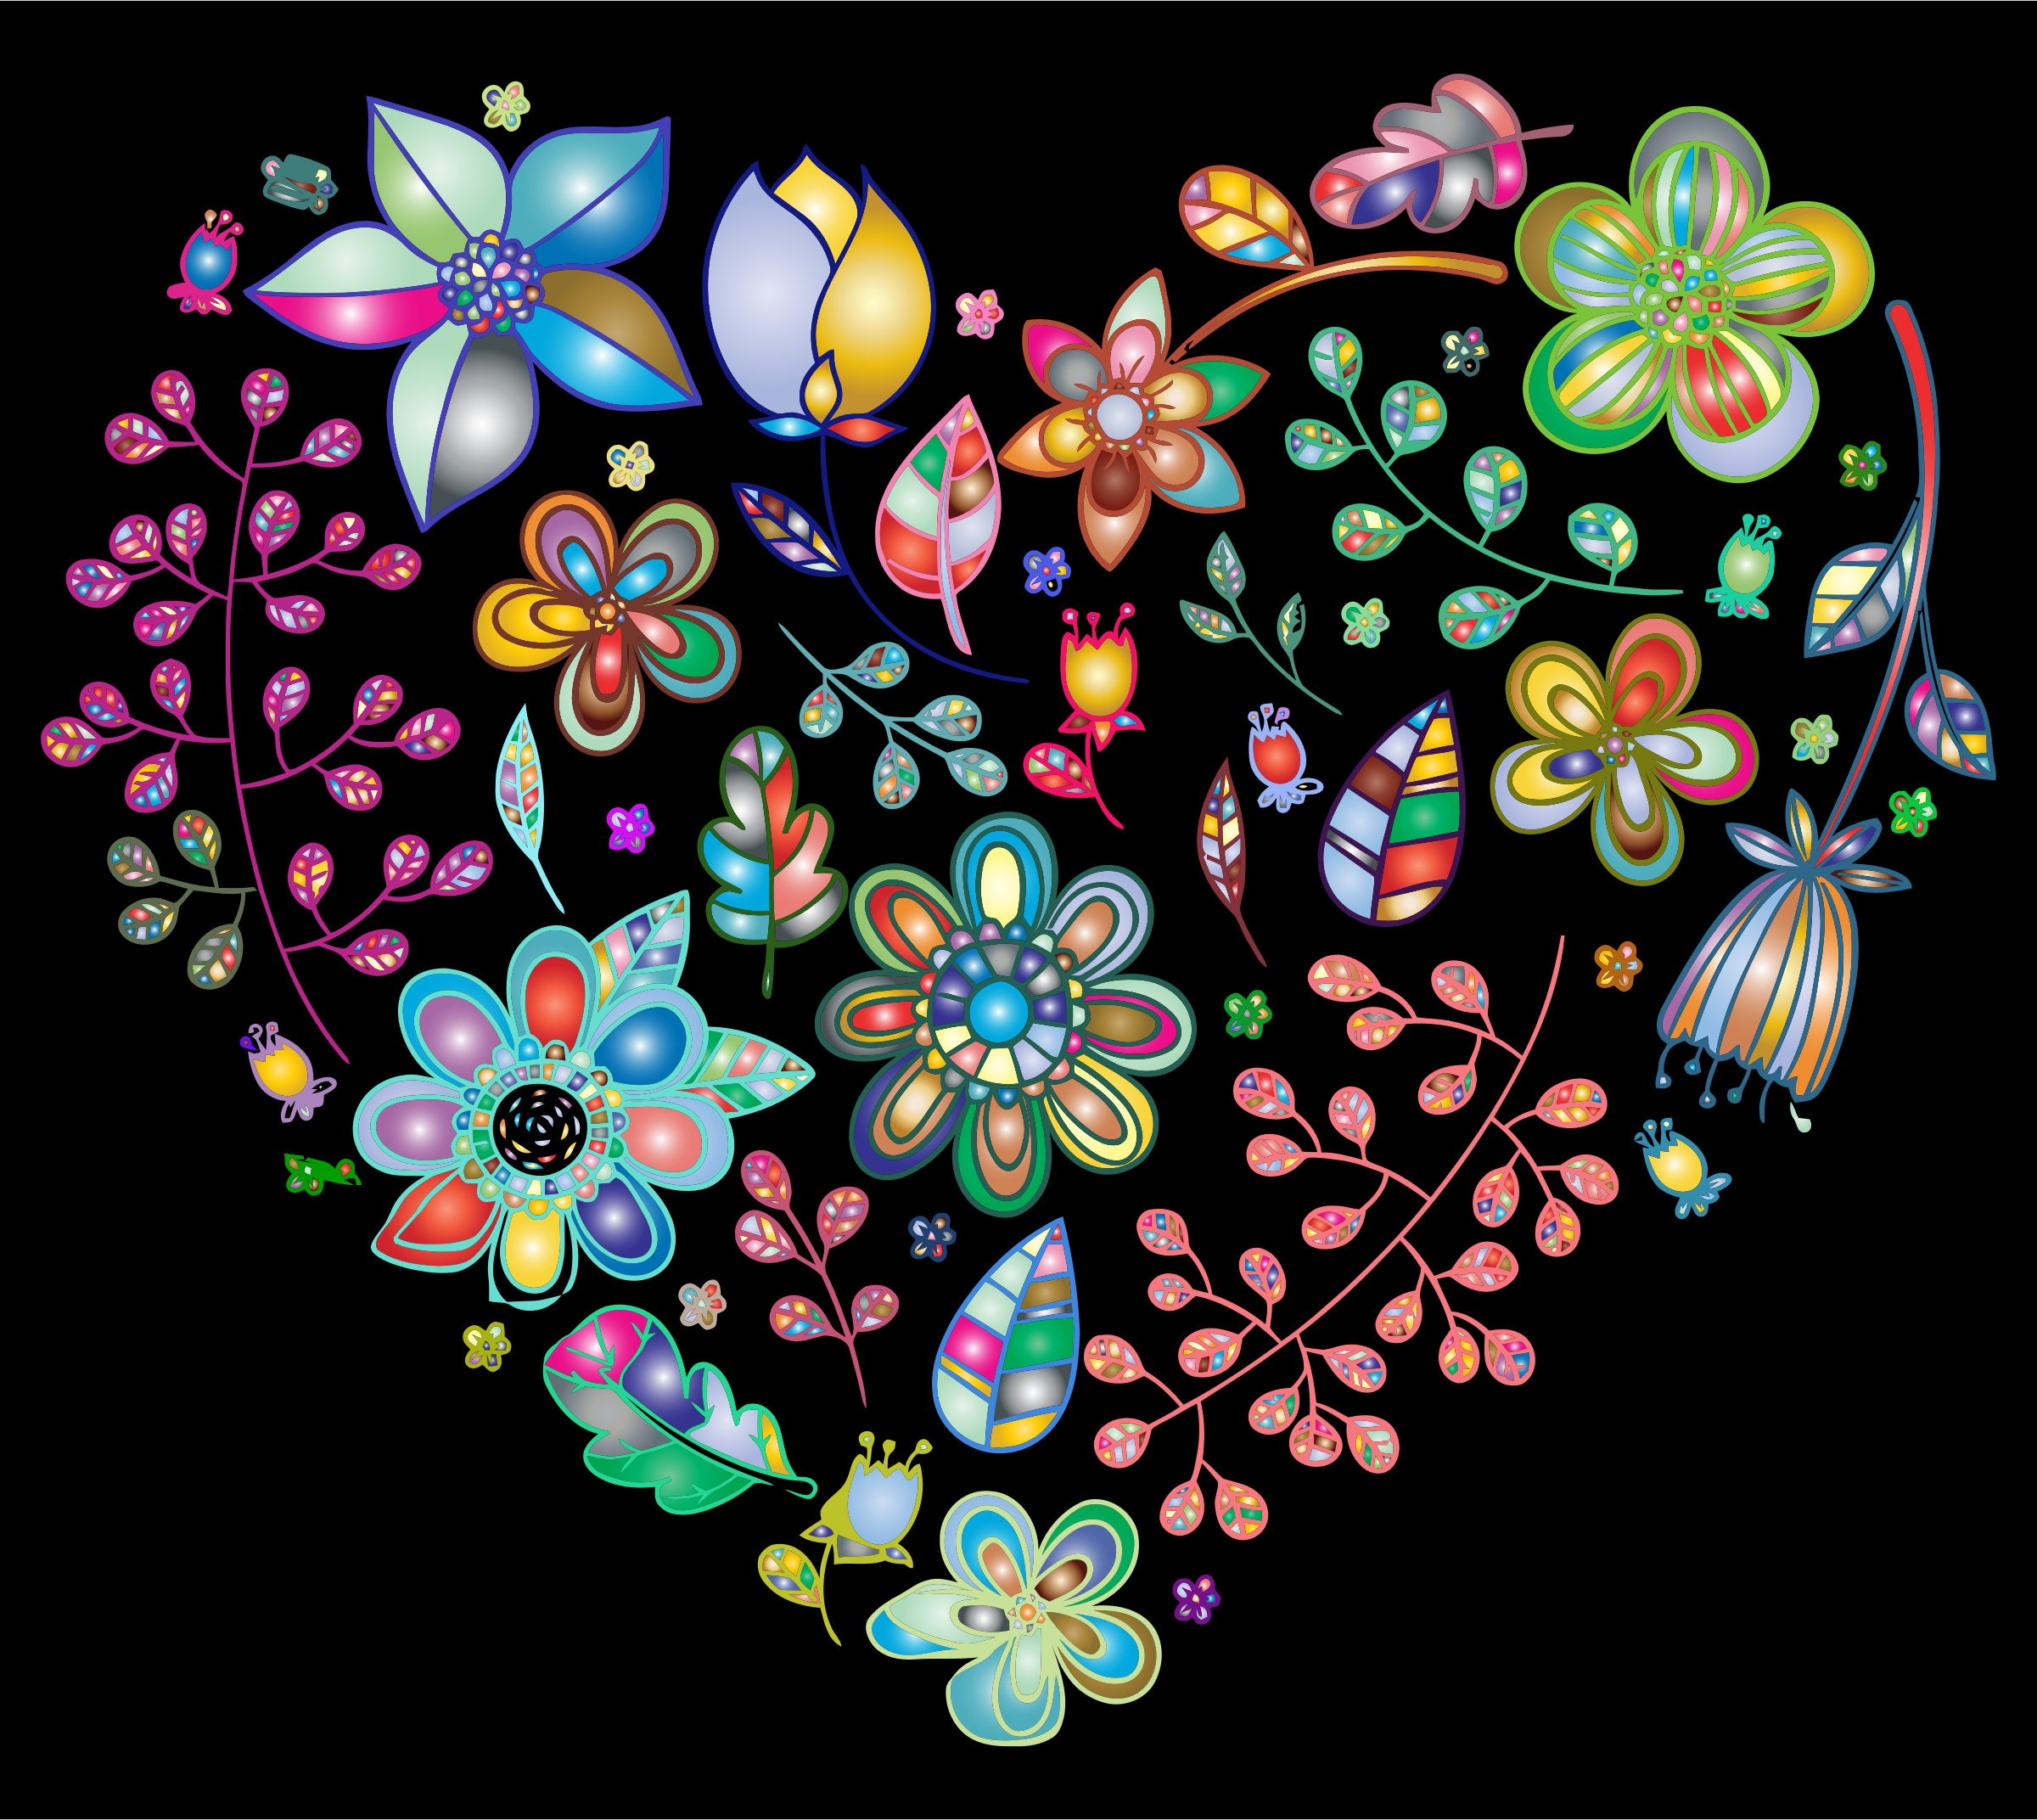 Prismatic Psychedelic Floral Heart 2 by GDJ